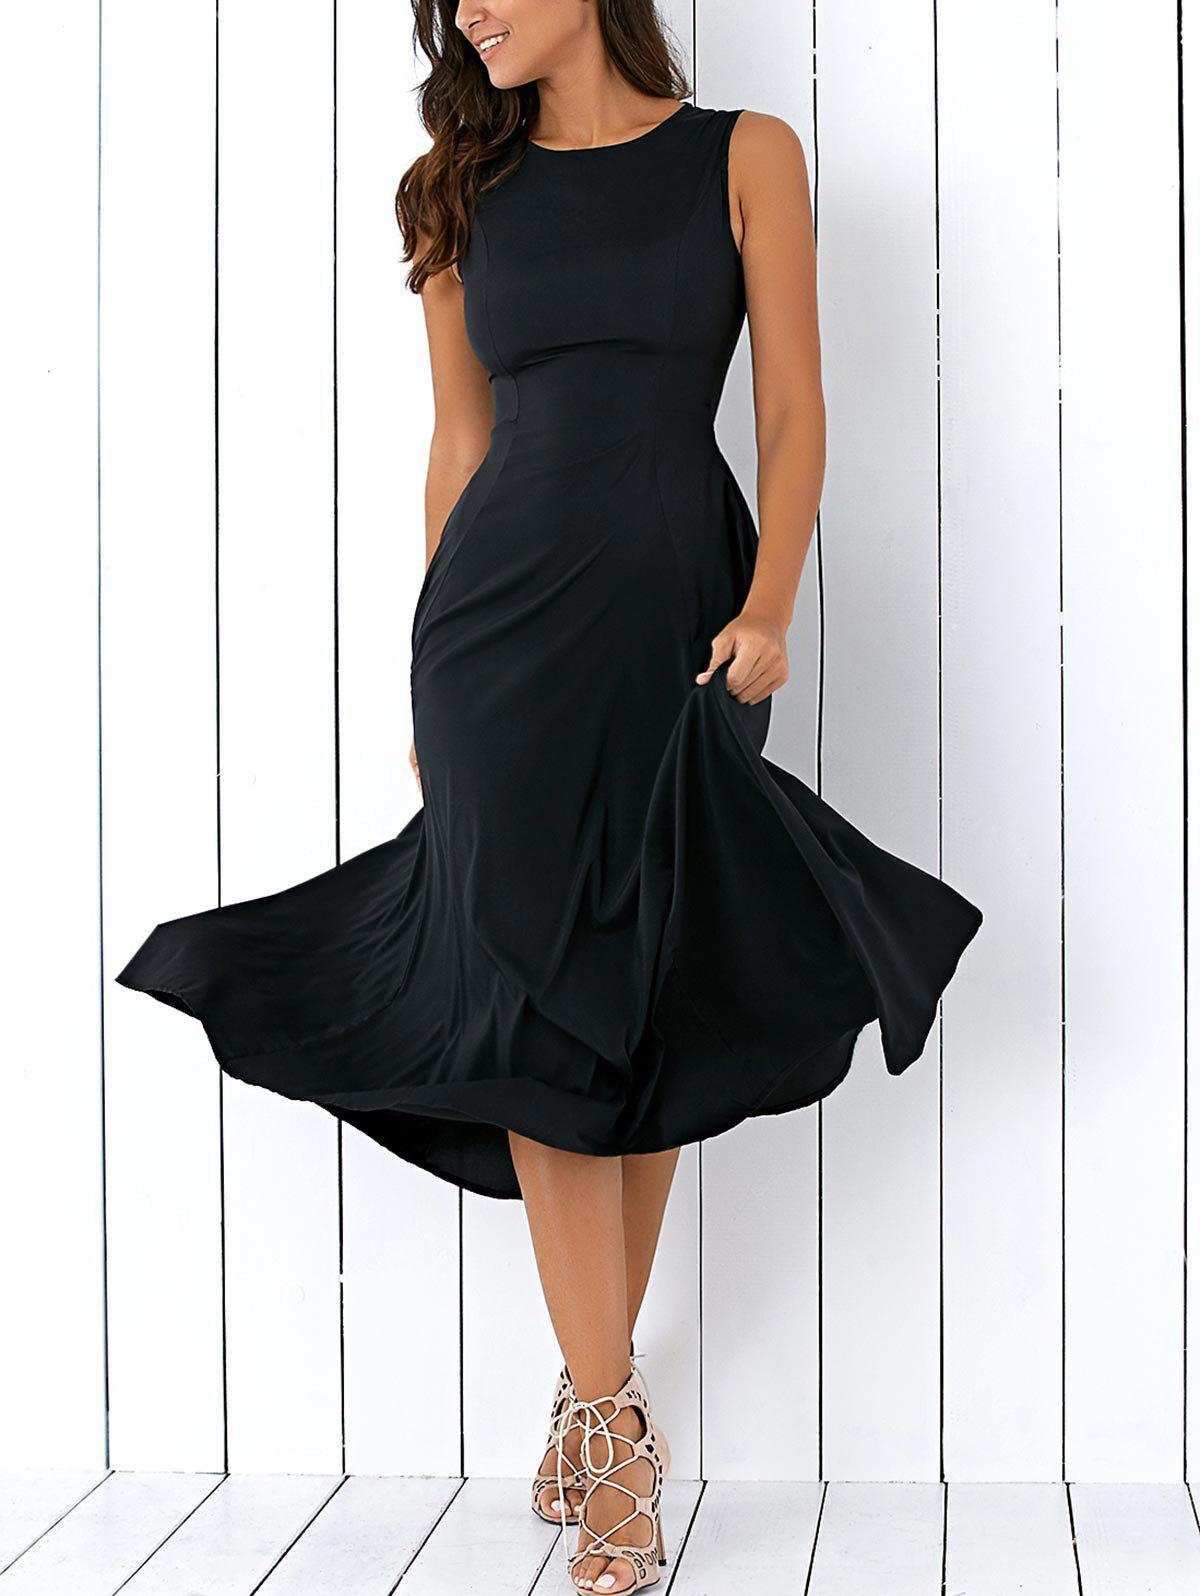 Long A Line Sleeveless Semi Formal Plain Prom DressWOMEN<br><br>Size: L; Color: BLACK; Style: Casual; Material: Cotton Blend; Silhouette: A-Line; Dresses Length: Mid-Calf; Neckline: Round Collar; Sleeve Length: Sleeveless; Pattern Type: Solid; With Belt: No; Season: Fall,Spring,Summer; Weight: 0.2460kg; Package Contents: 1 x Dress; Occasion: Semi Formal;